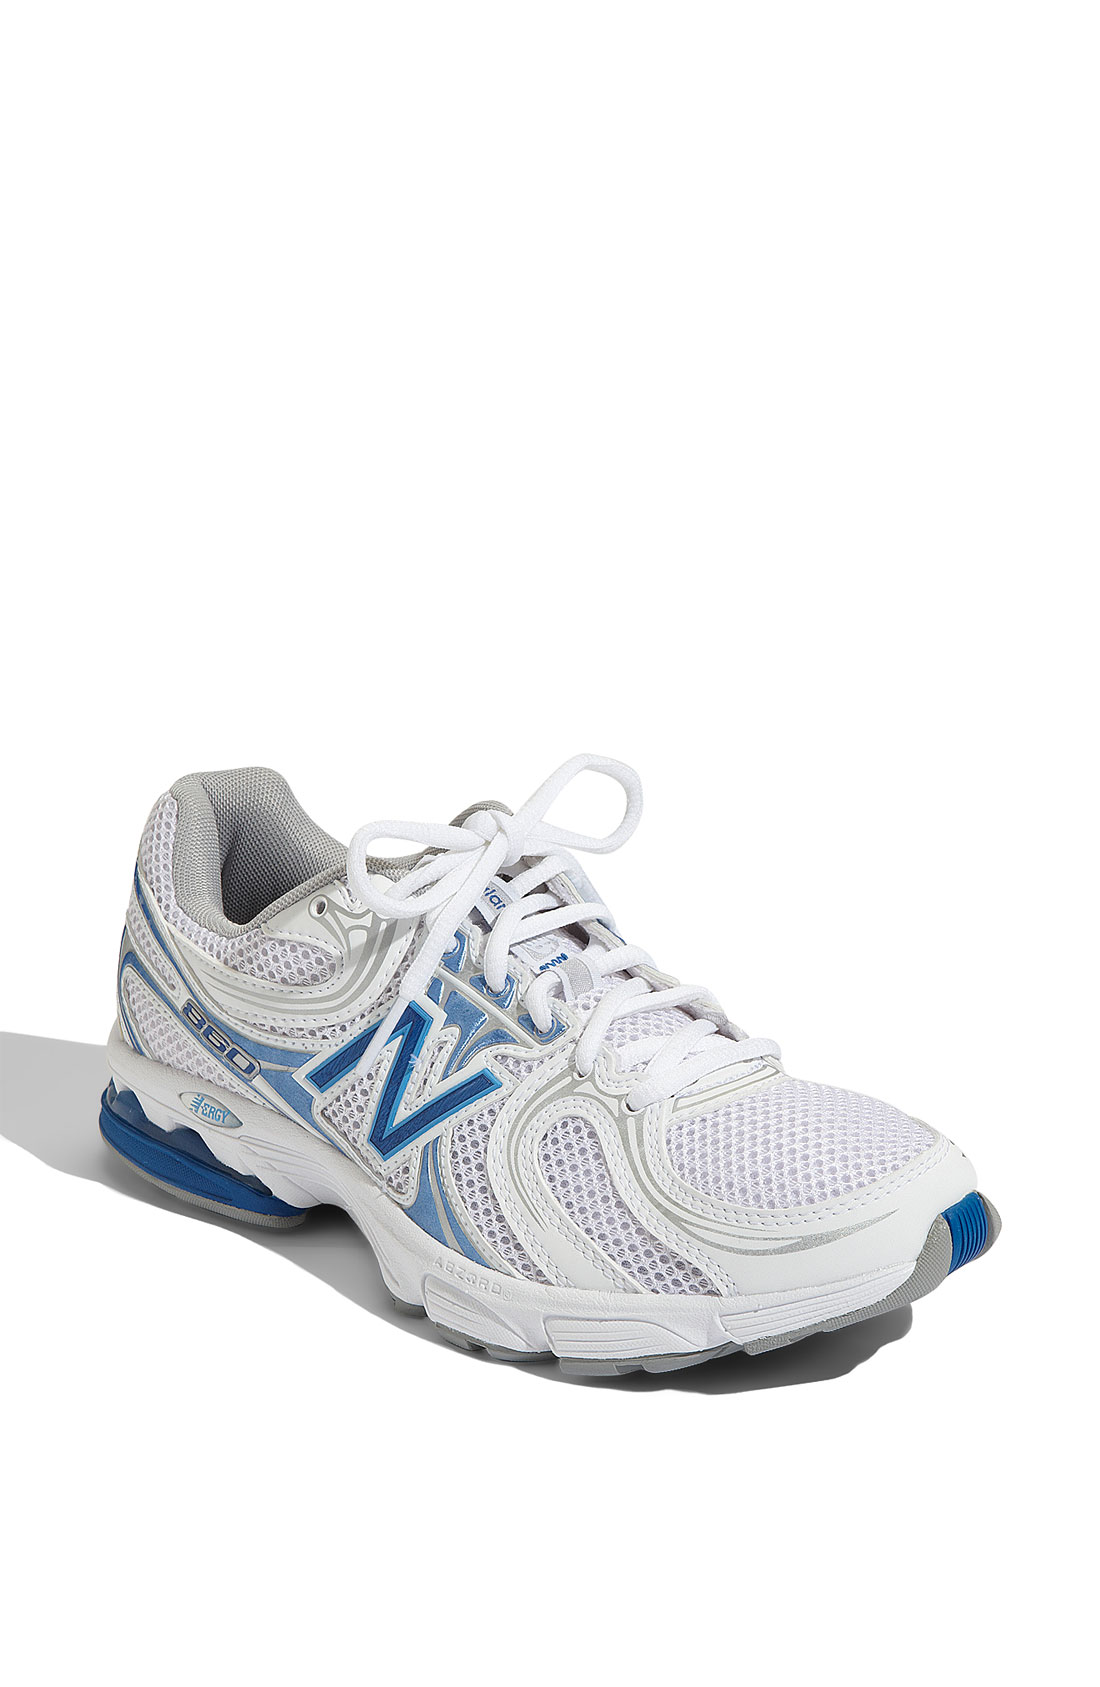 new balance 860 walking shoe in white white blue